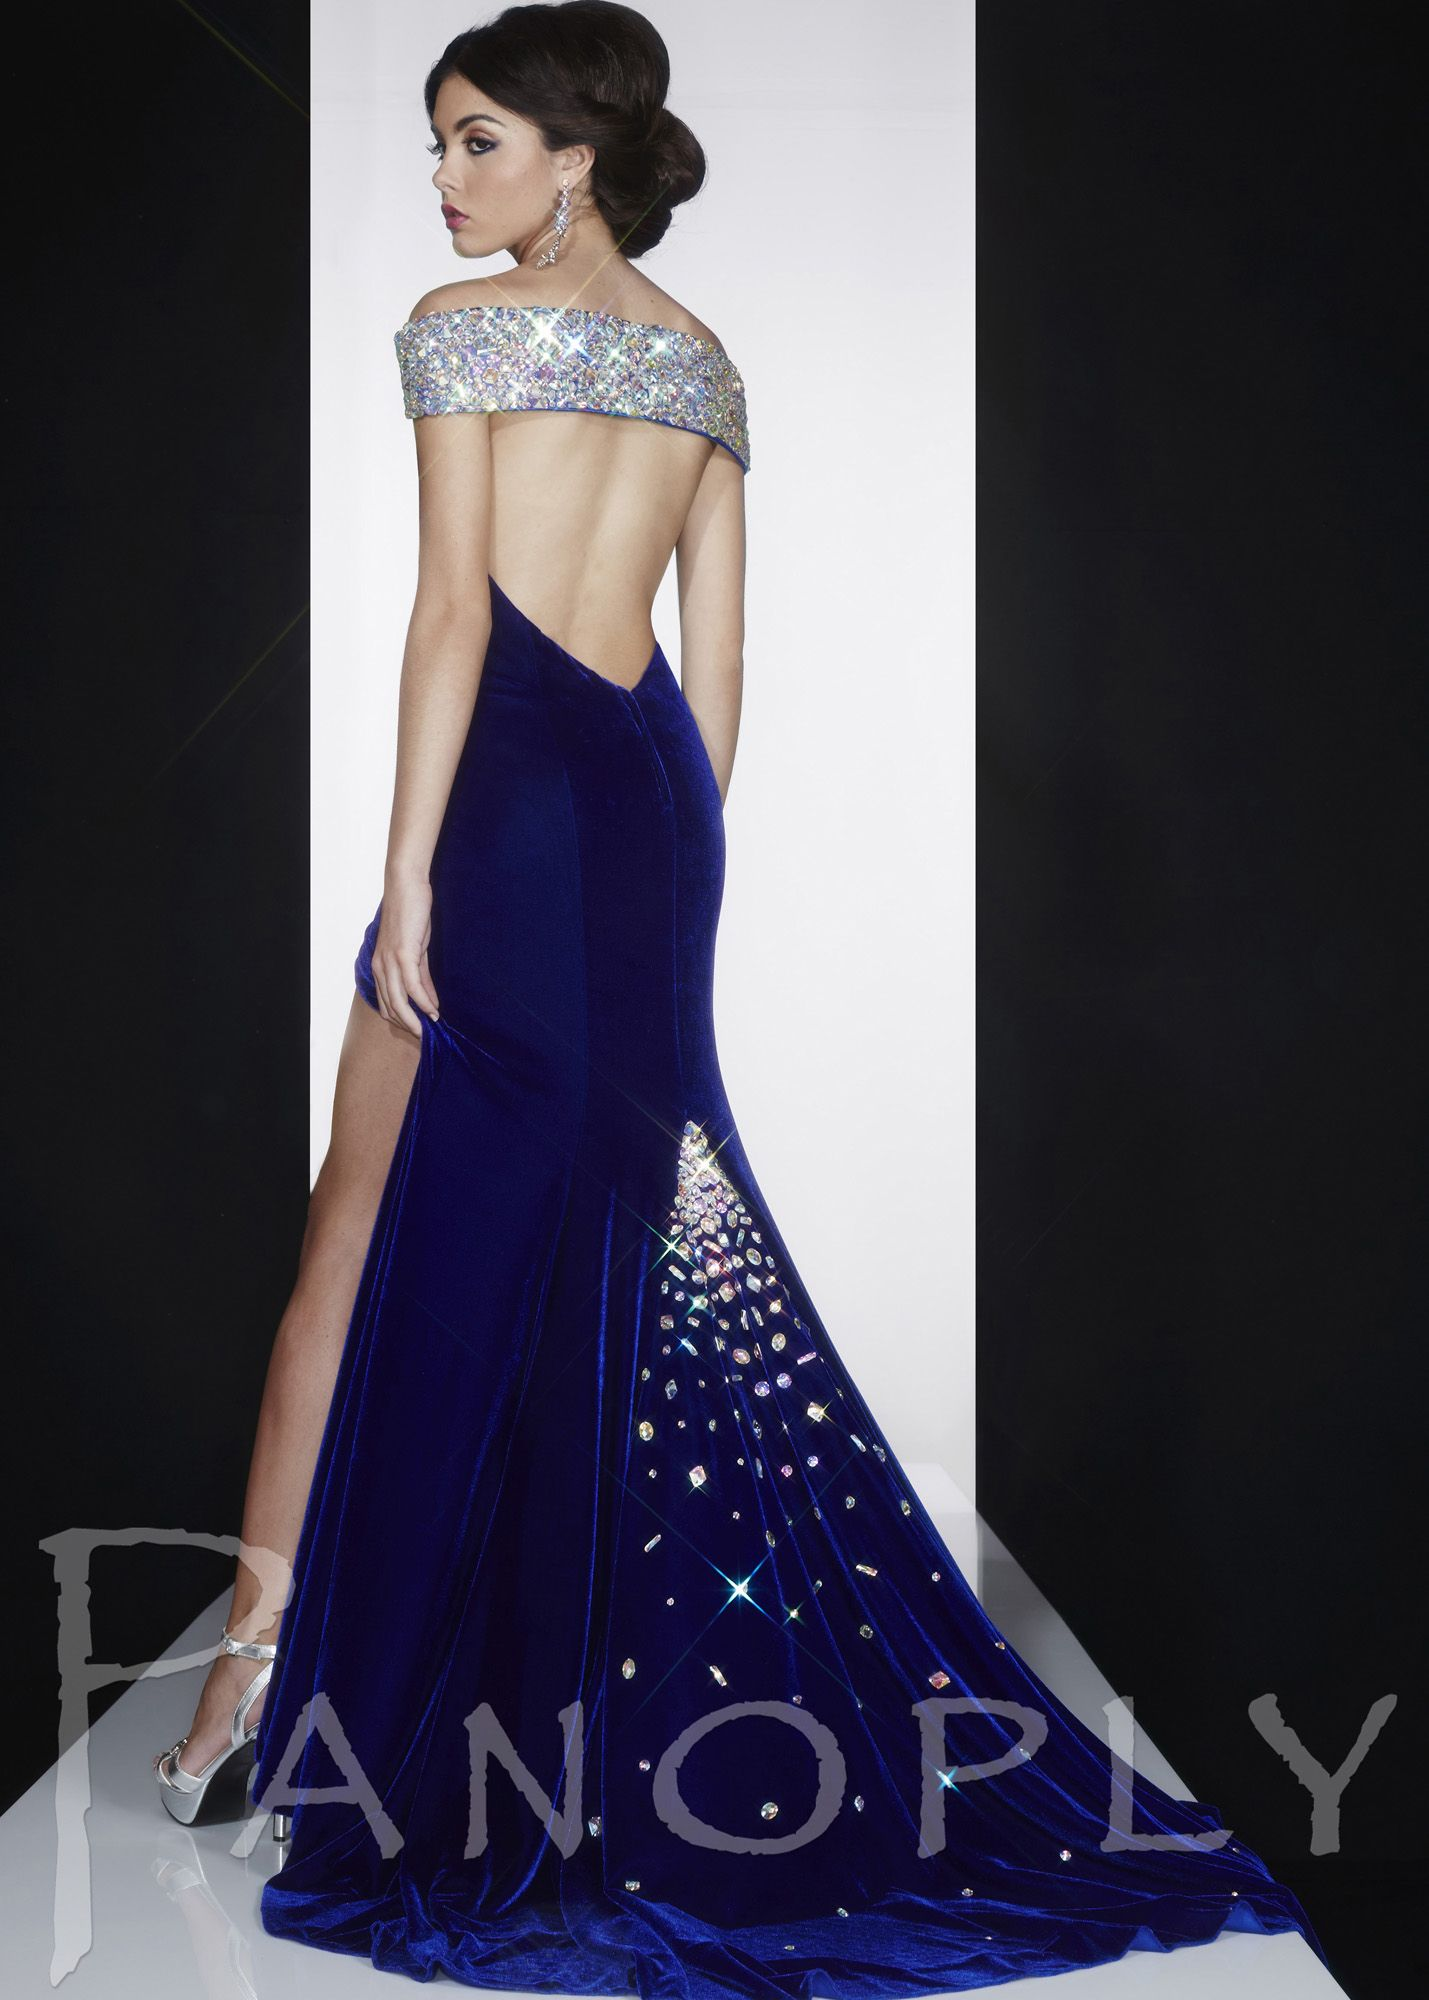 61d2b3862ce0 Panoply 14593V Gorgeous Off the Shoulder Royal Blue Velvet Gown with an  Open Back